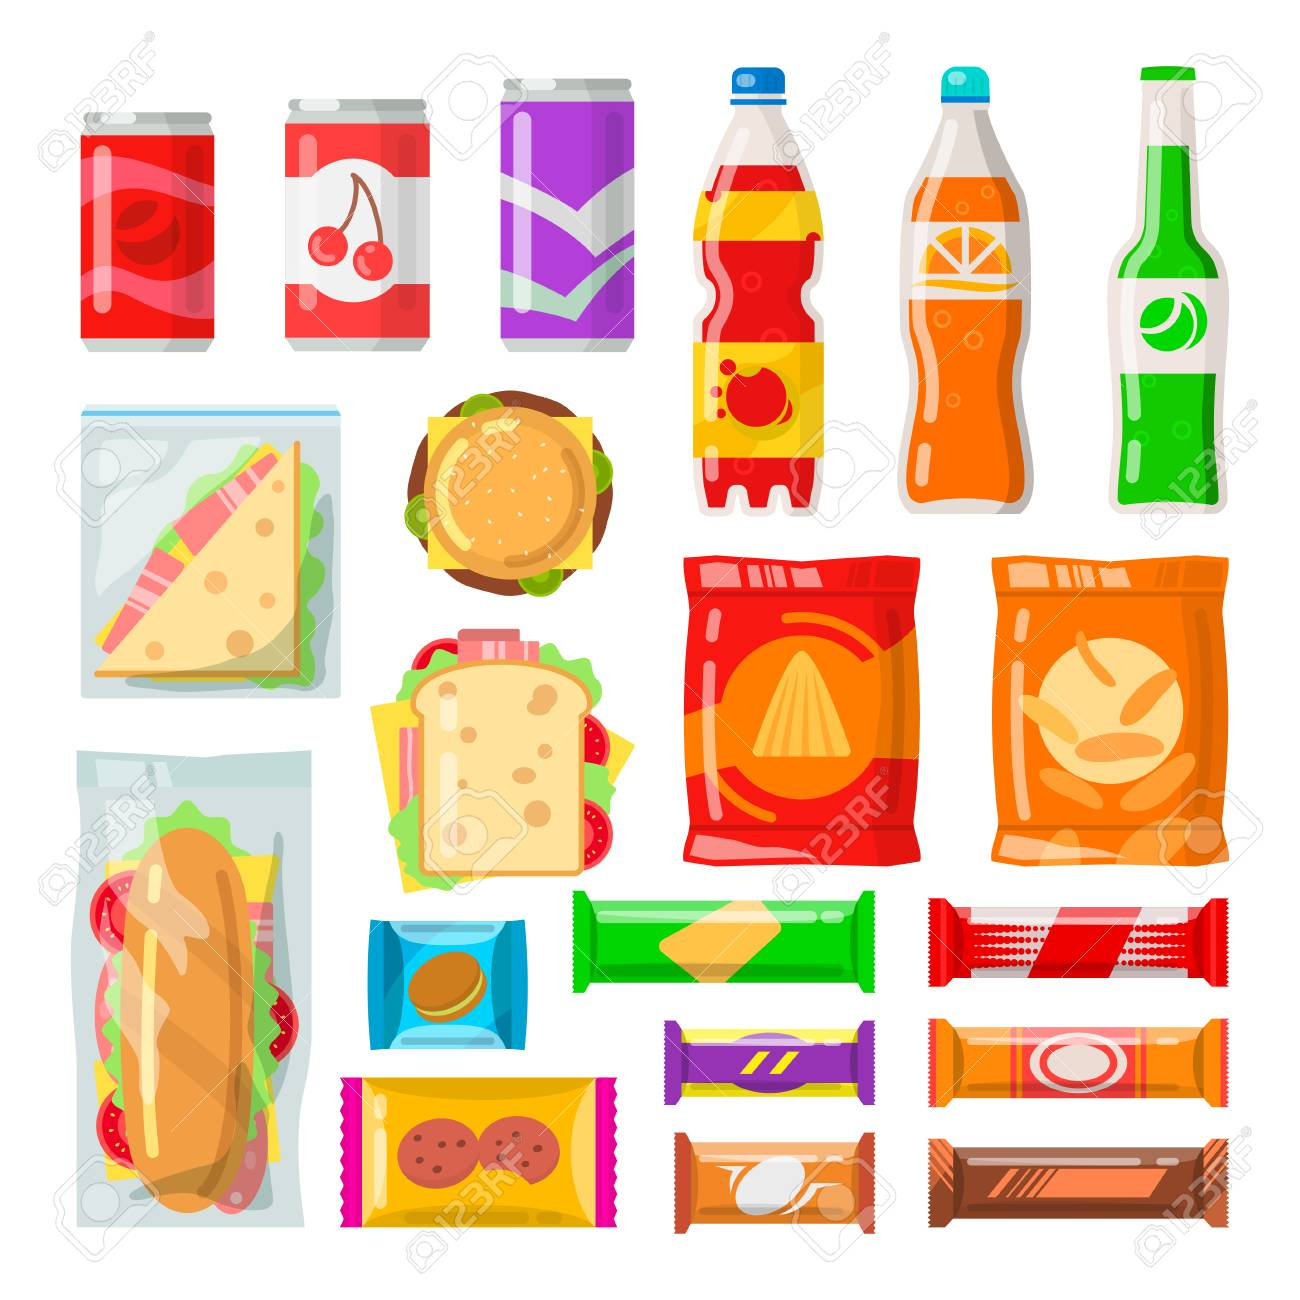 Vending machine products. Tasty snacks, beverages, drinks from automated machine. Vector flat style cartoon illustration isolated on white background - 90002640